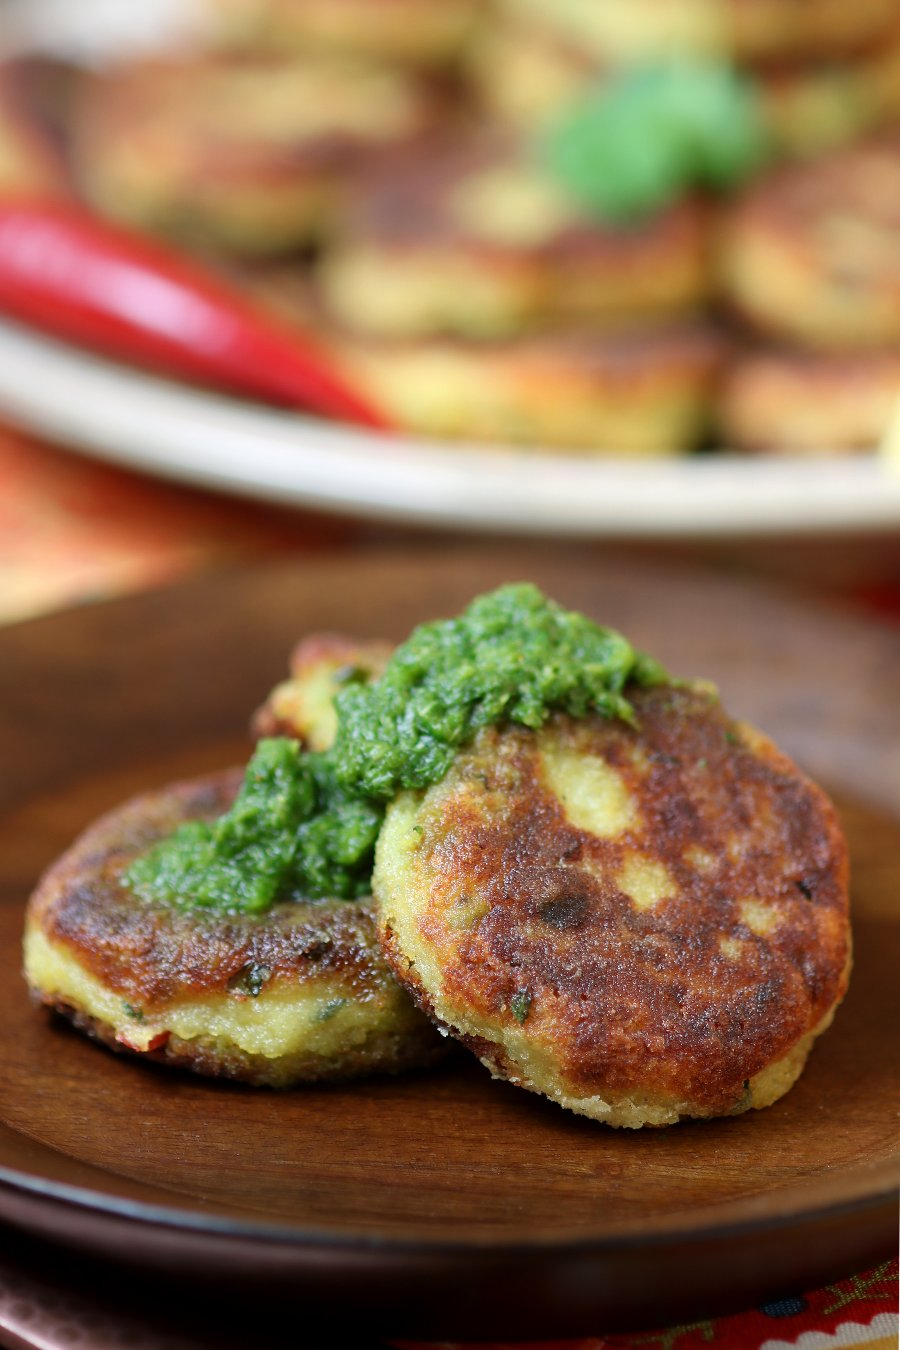 Spiced Potato Patties (Aloo Tikki) are a crisp and tender Indian street food snack that you can recreate in your kitchen.